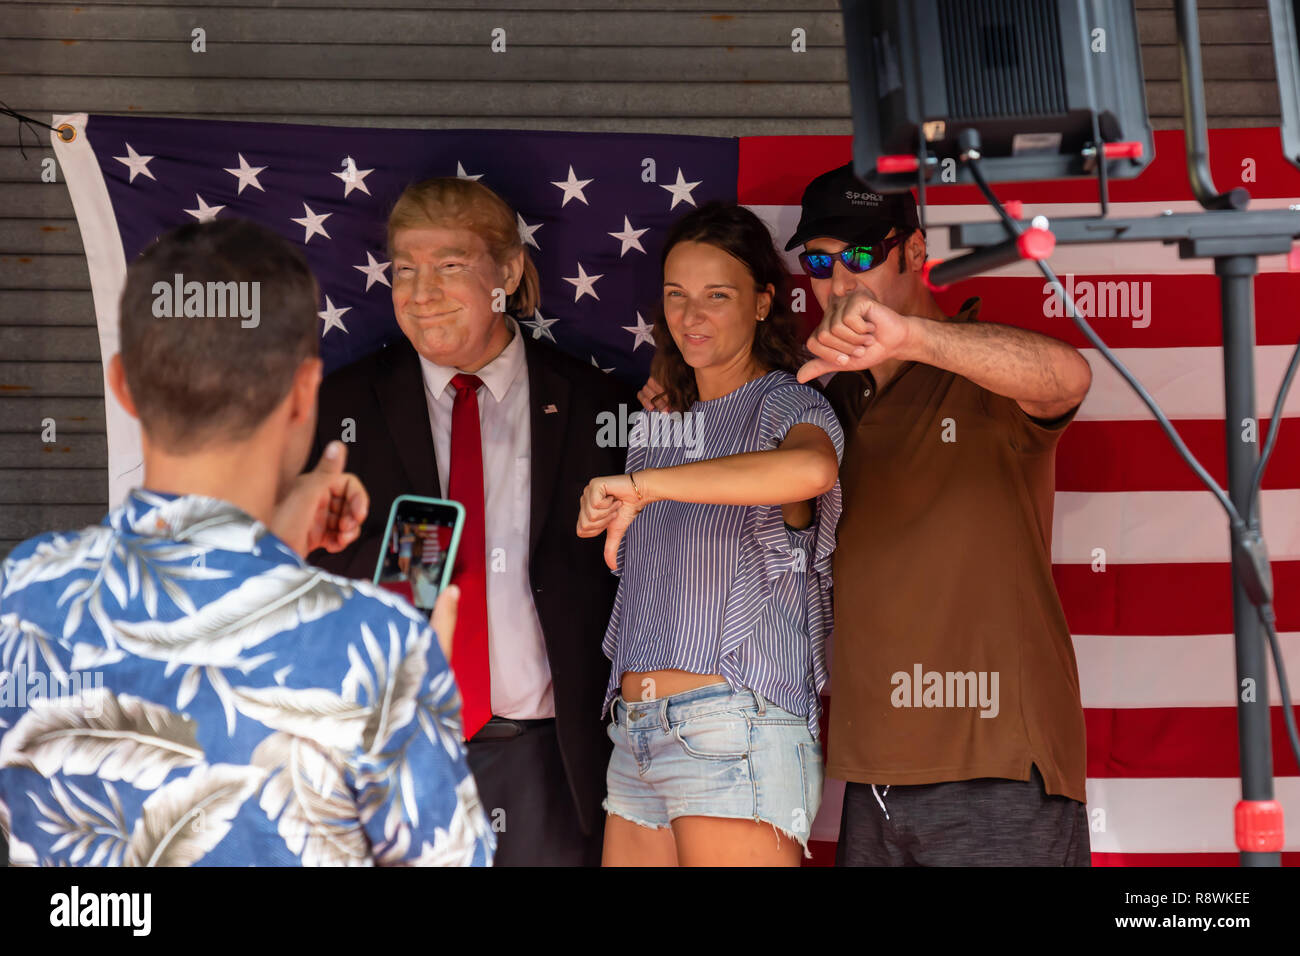 Donald Trump Posing Stock Photos & Donald Trump Posing Stock Images